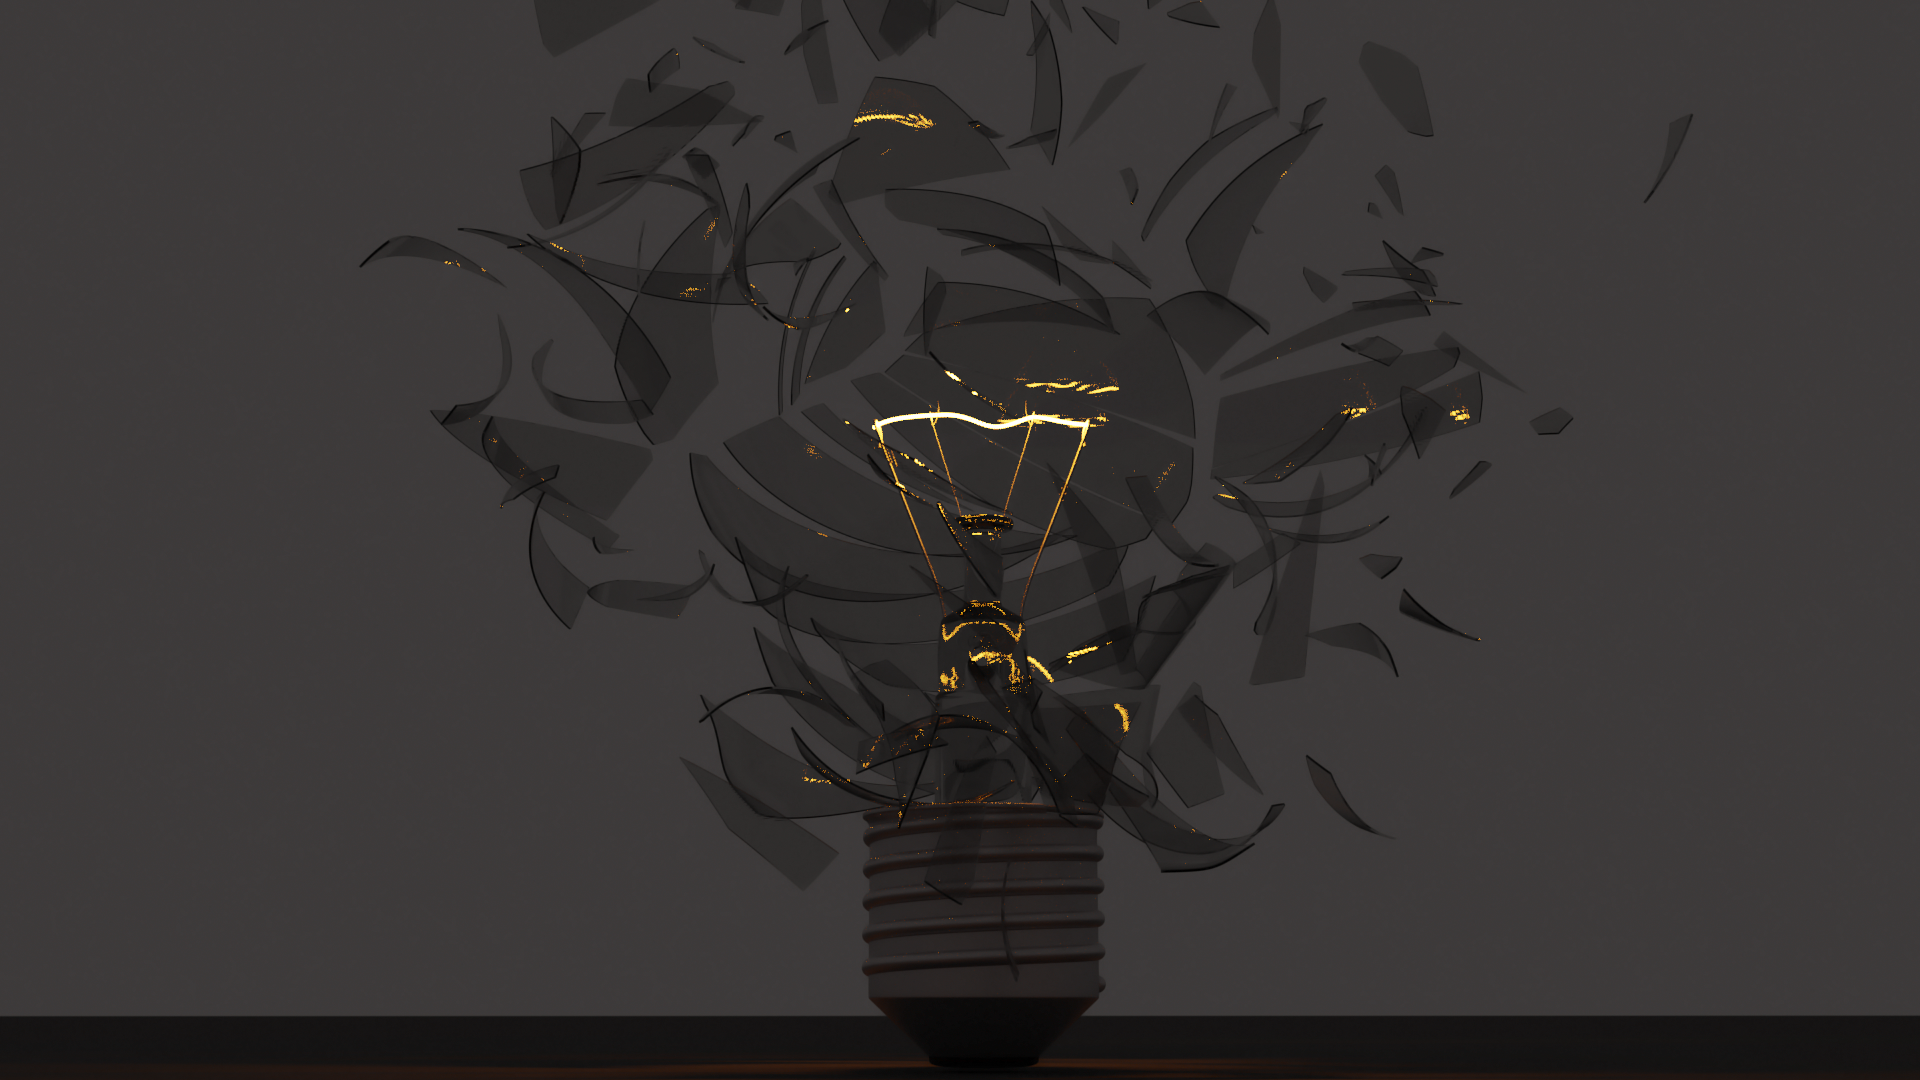 Lightbulb Cracked